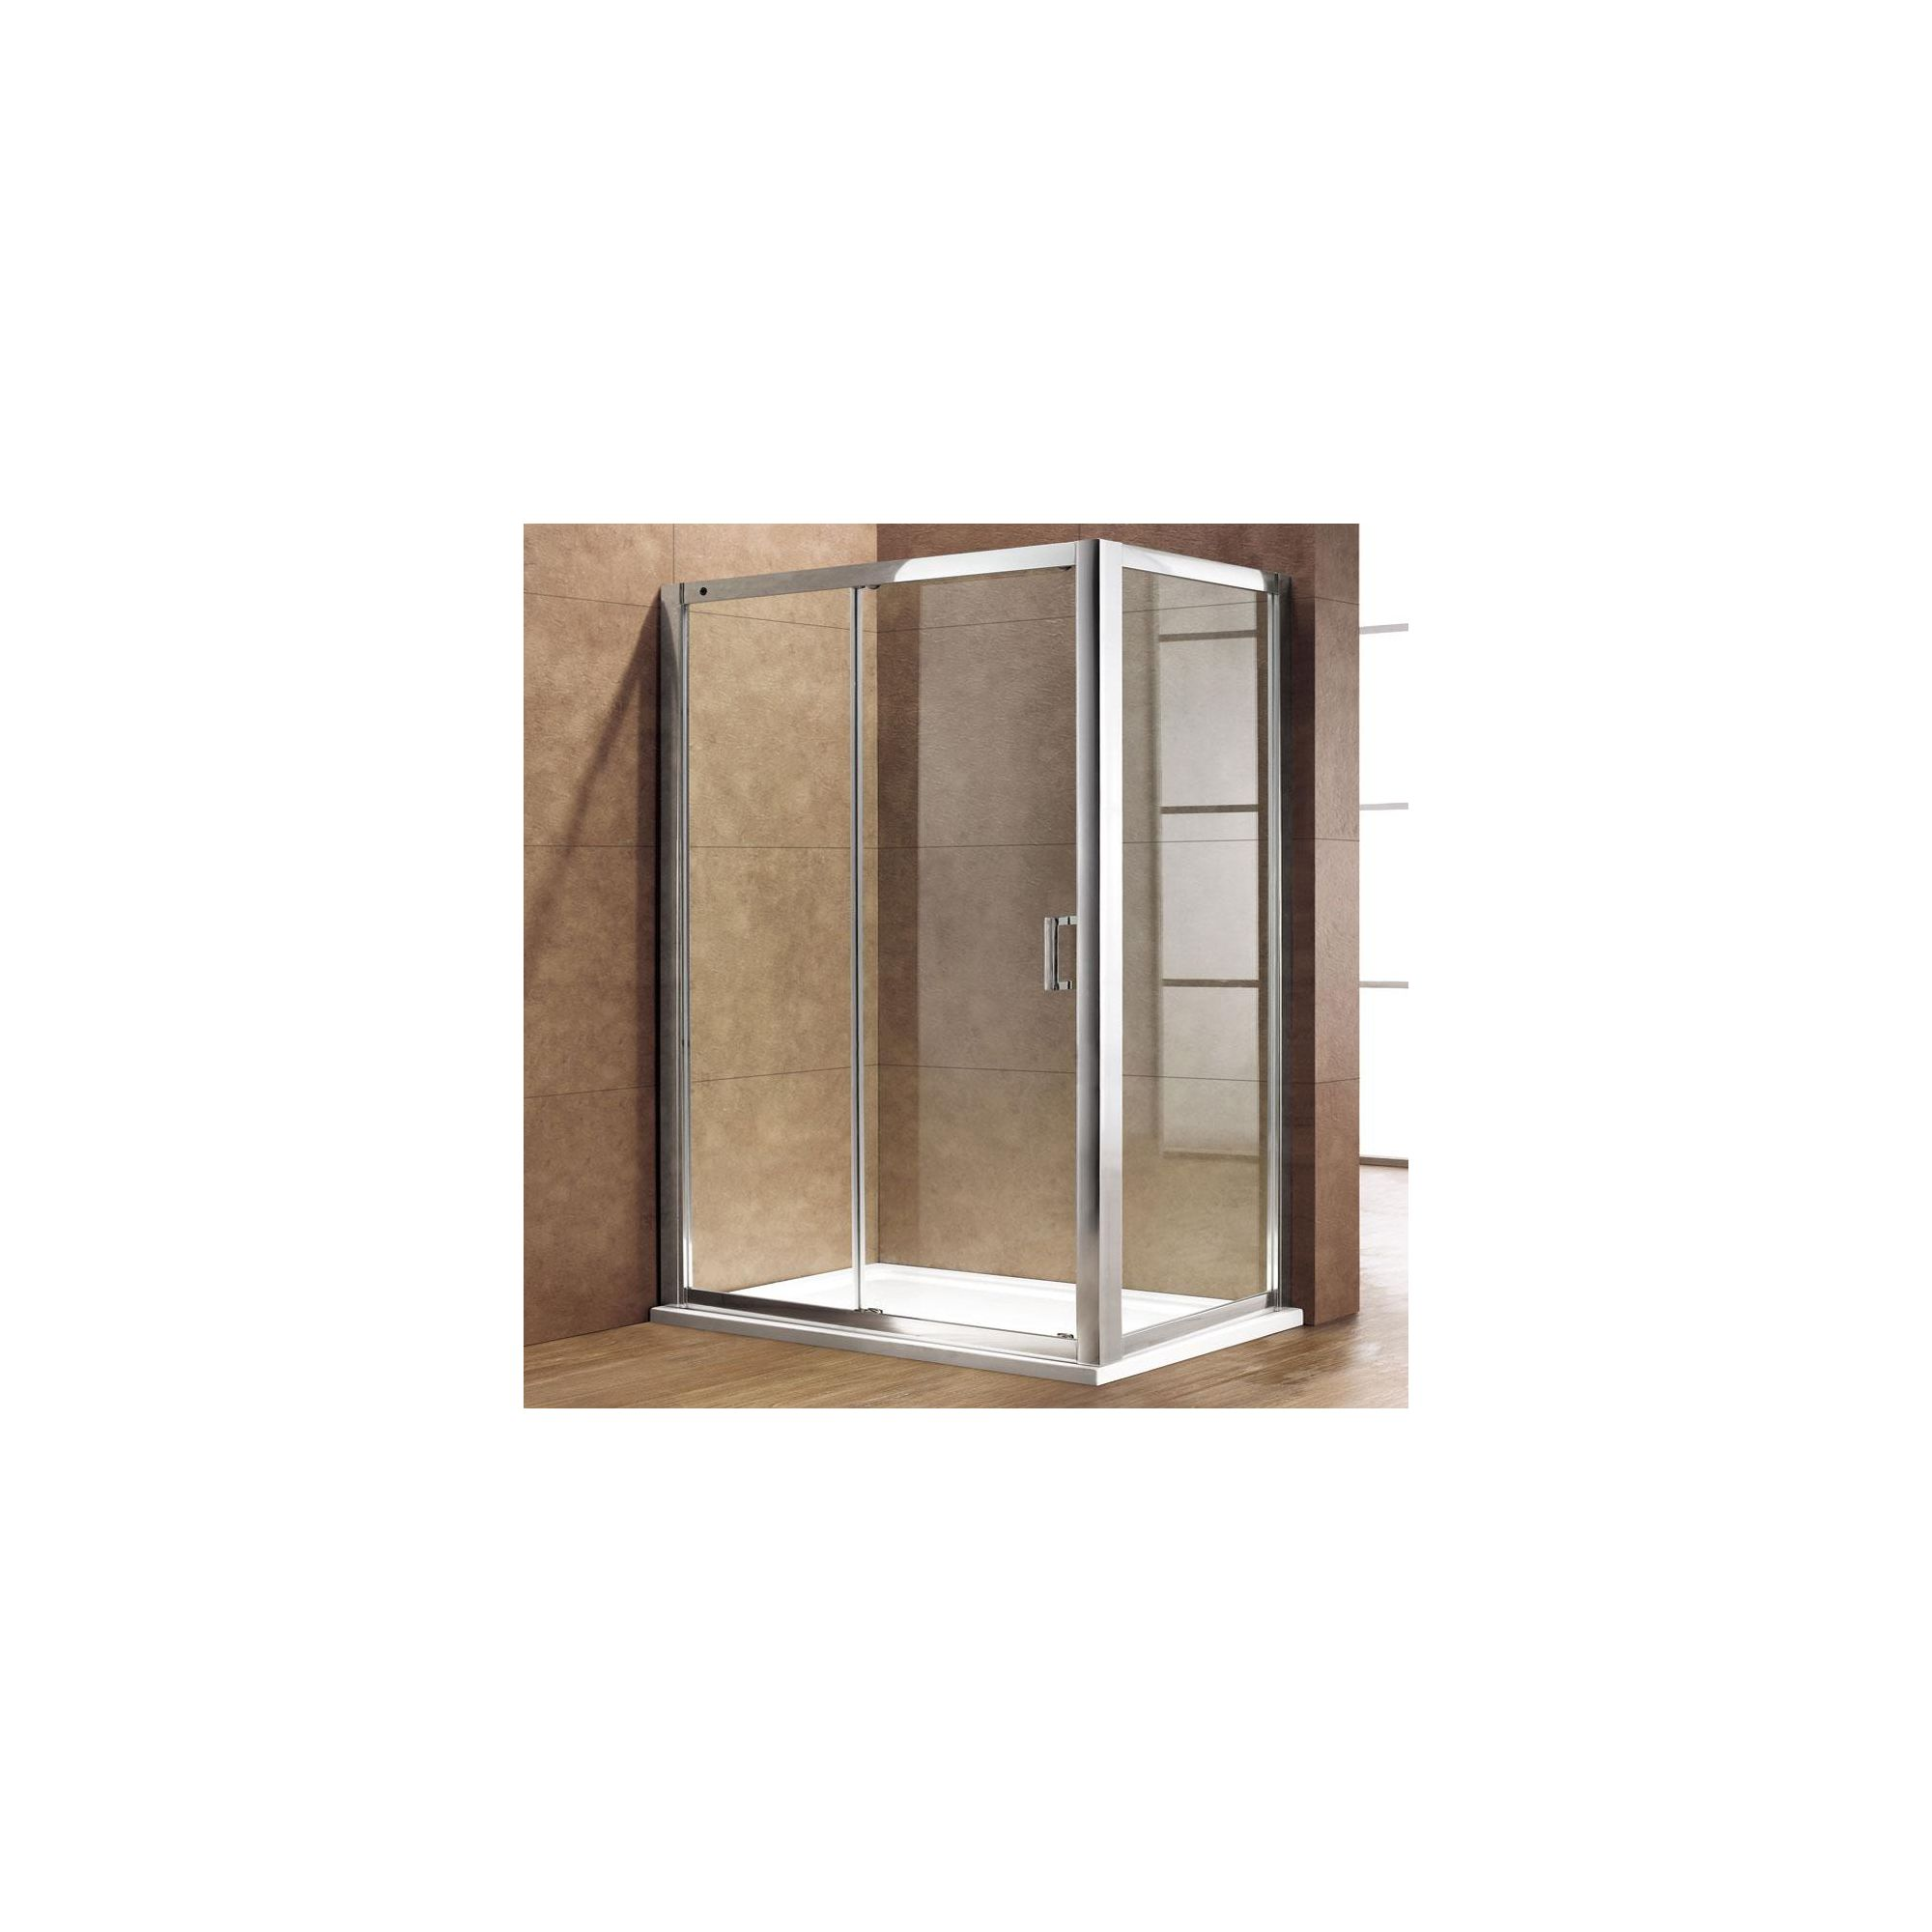 Duchy Premium Single Sliding Door Shower Enclosure, 1700mm x 700mm, 8mm Glass, Low Profile Tray at Tesco Direct